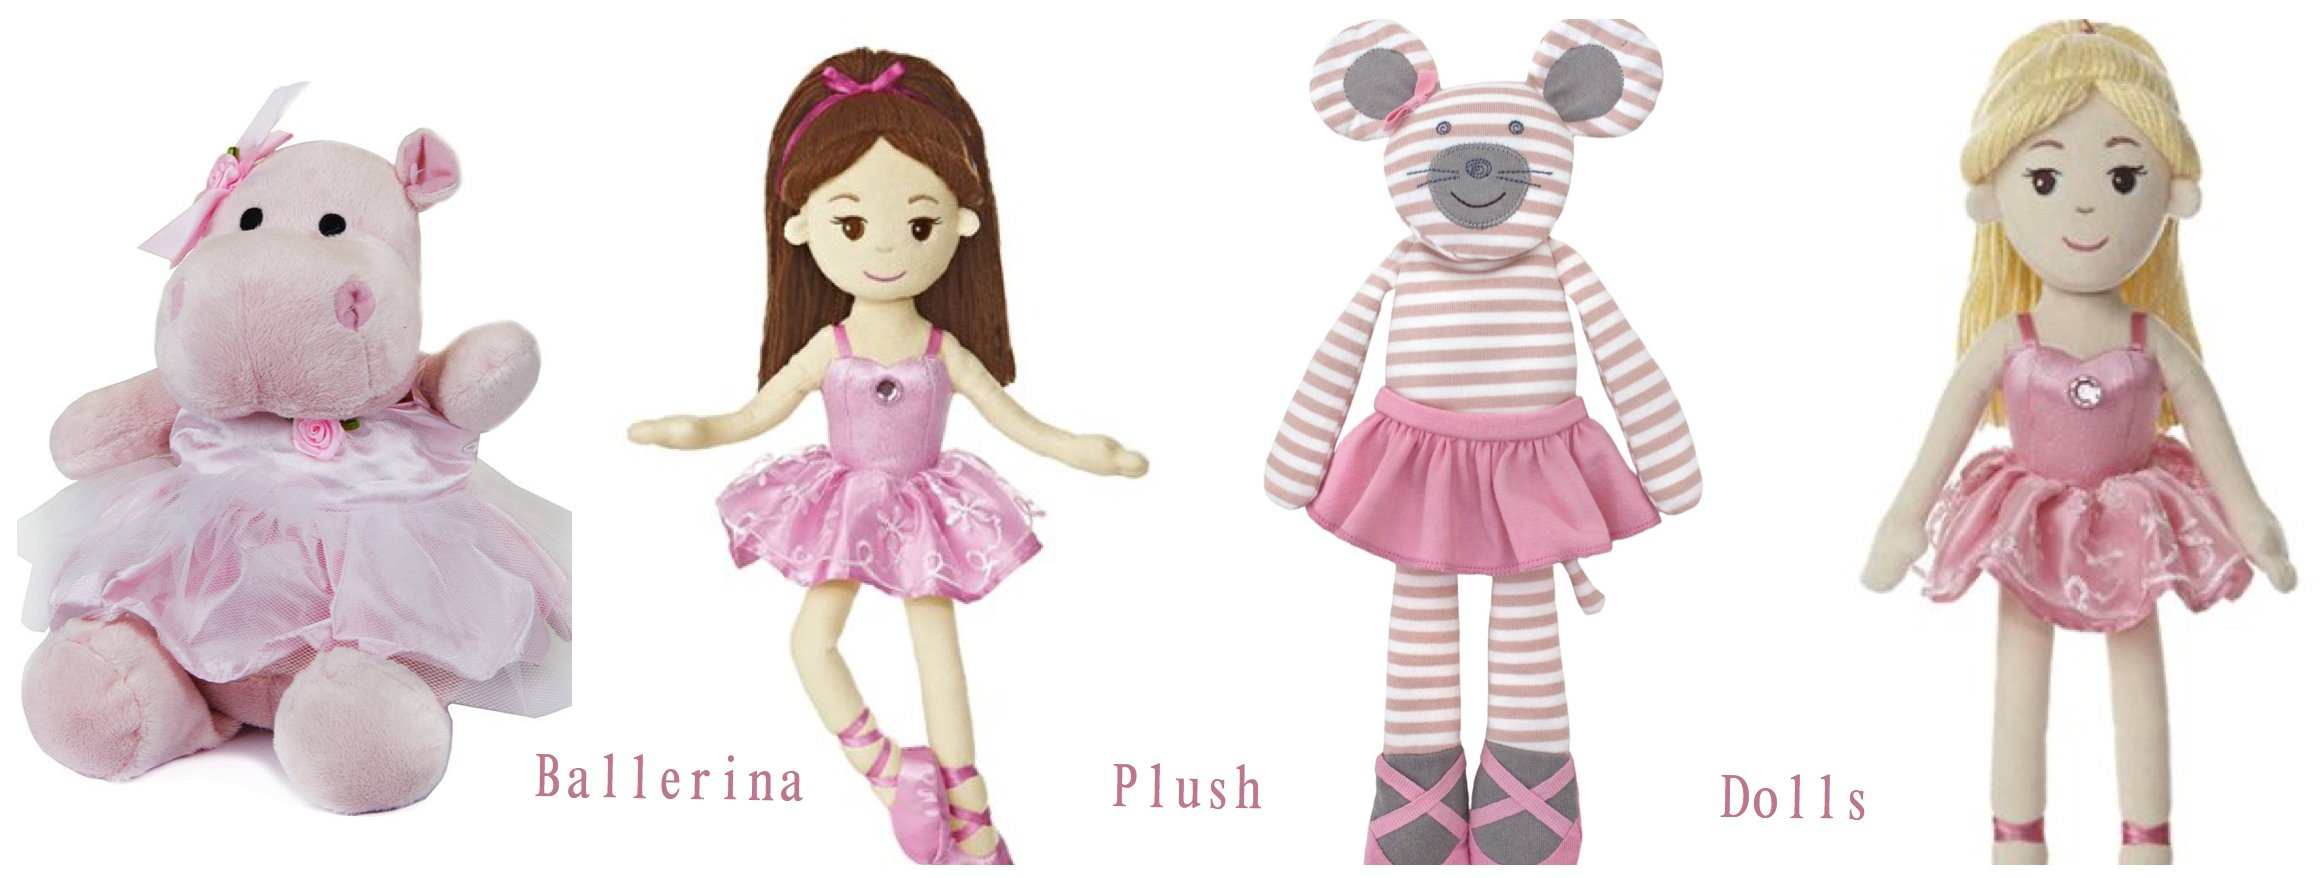 Ballerina Plush Dolls